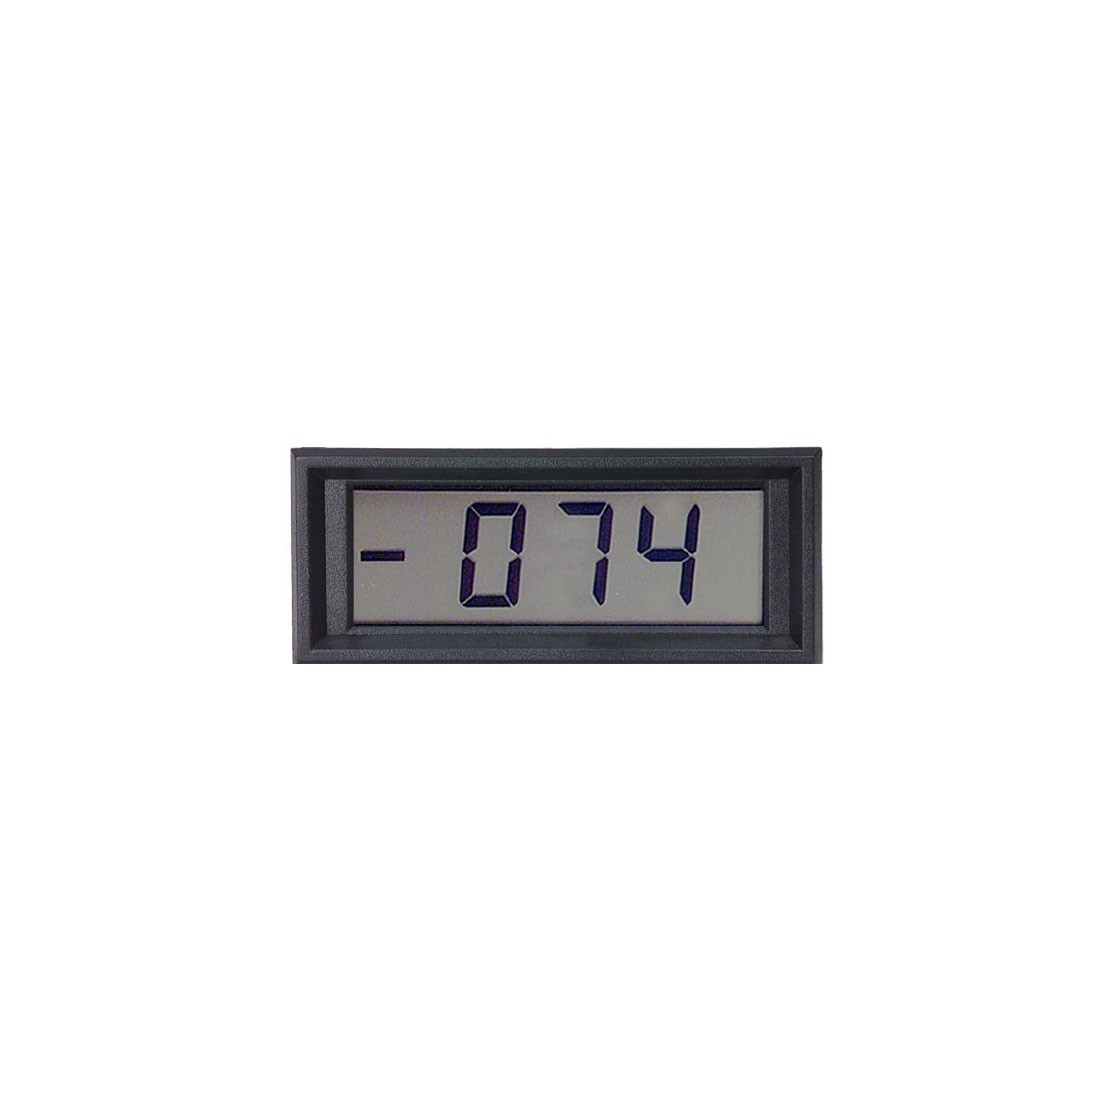 HLPI-J1 Loop Powered LCD Digital Panel Meter